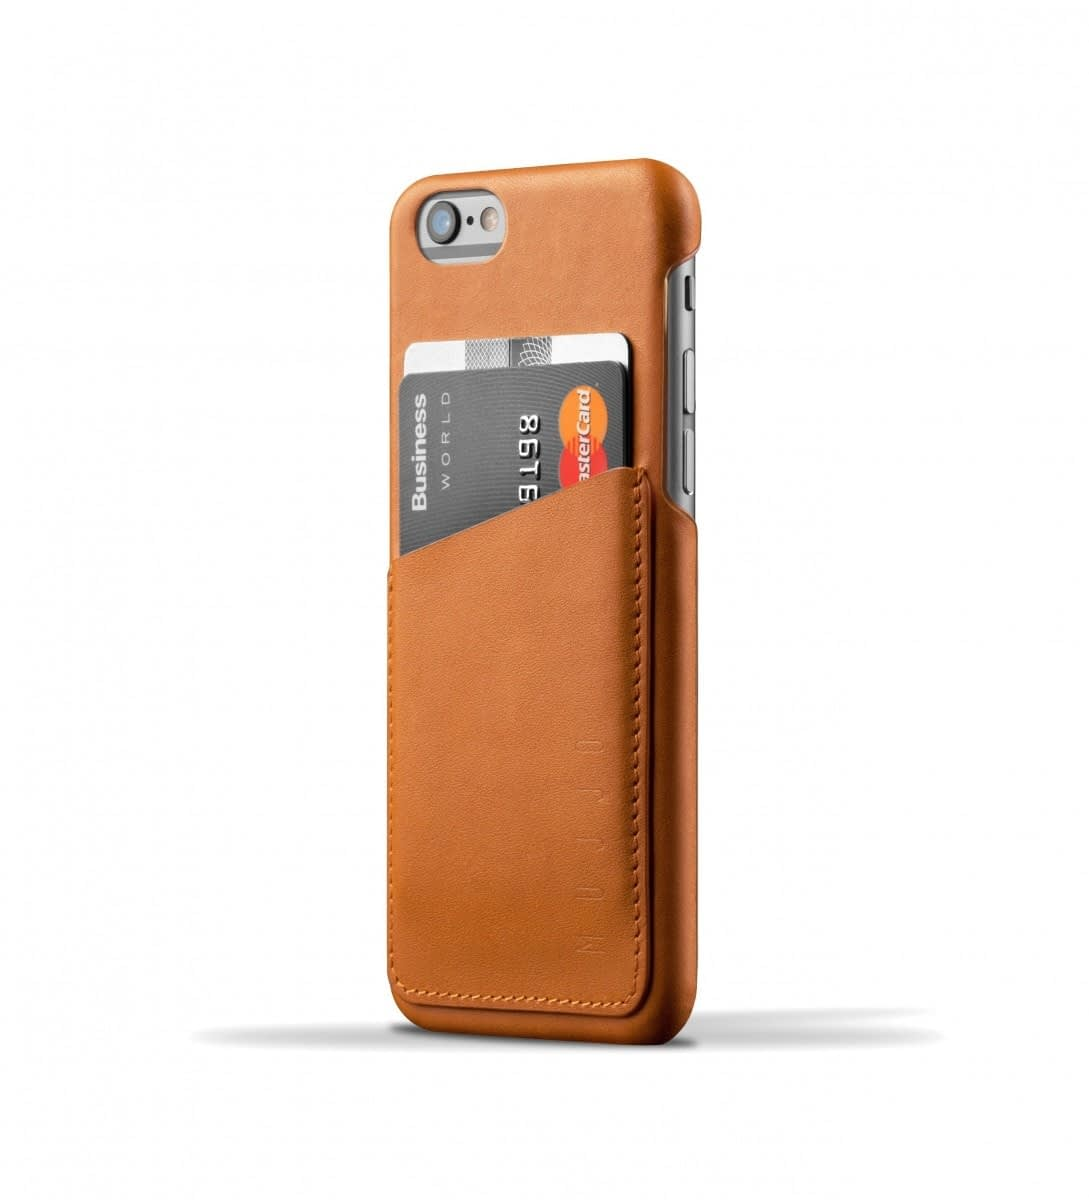 leather wallet case for iphone 6 tan 001 2 1089x1200